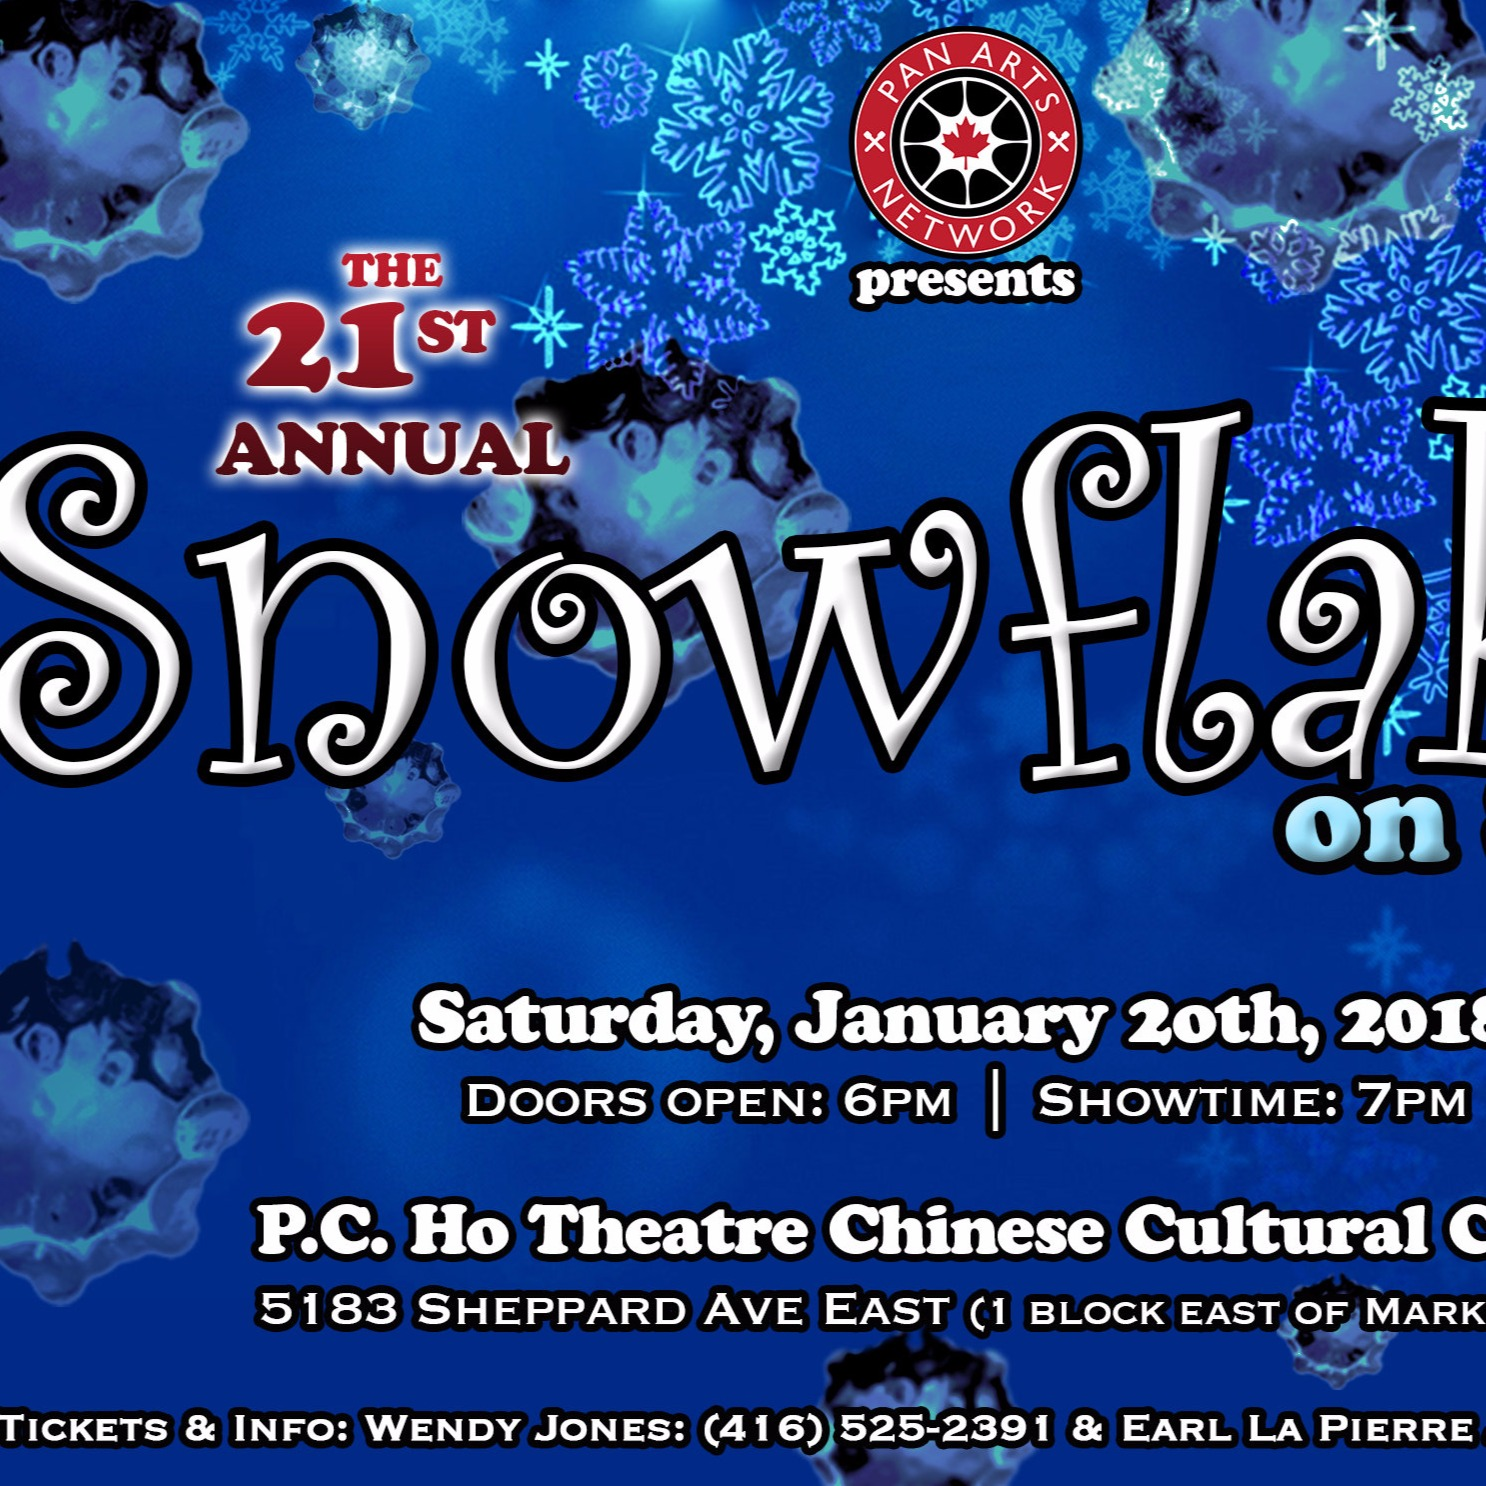 21st ANNUAL SNOWFLAKES ON STEEL